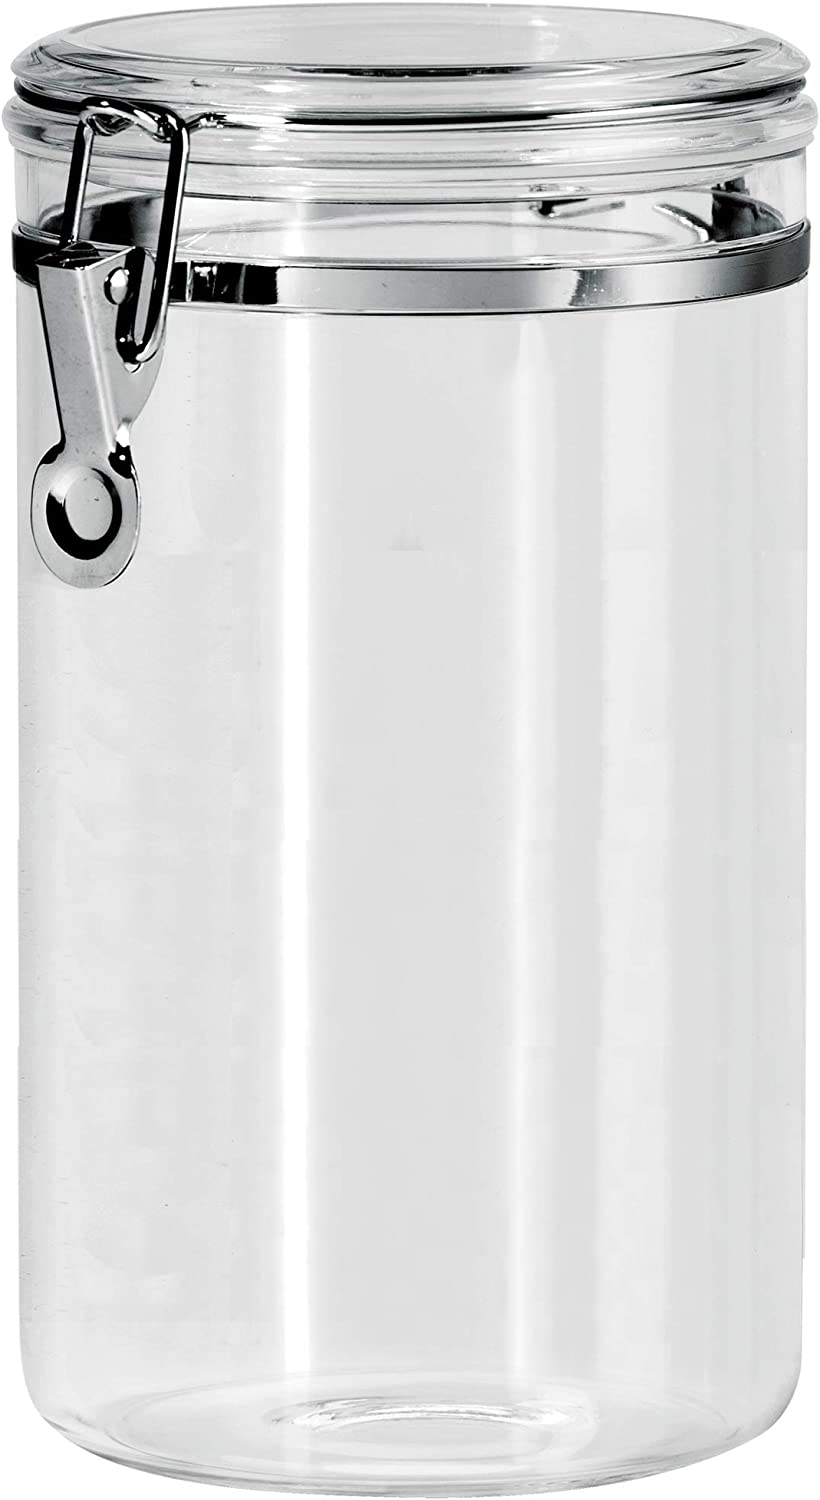 Oggi 72-Ounce Clear Acrylic Canister with Locking Clamp